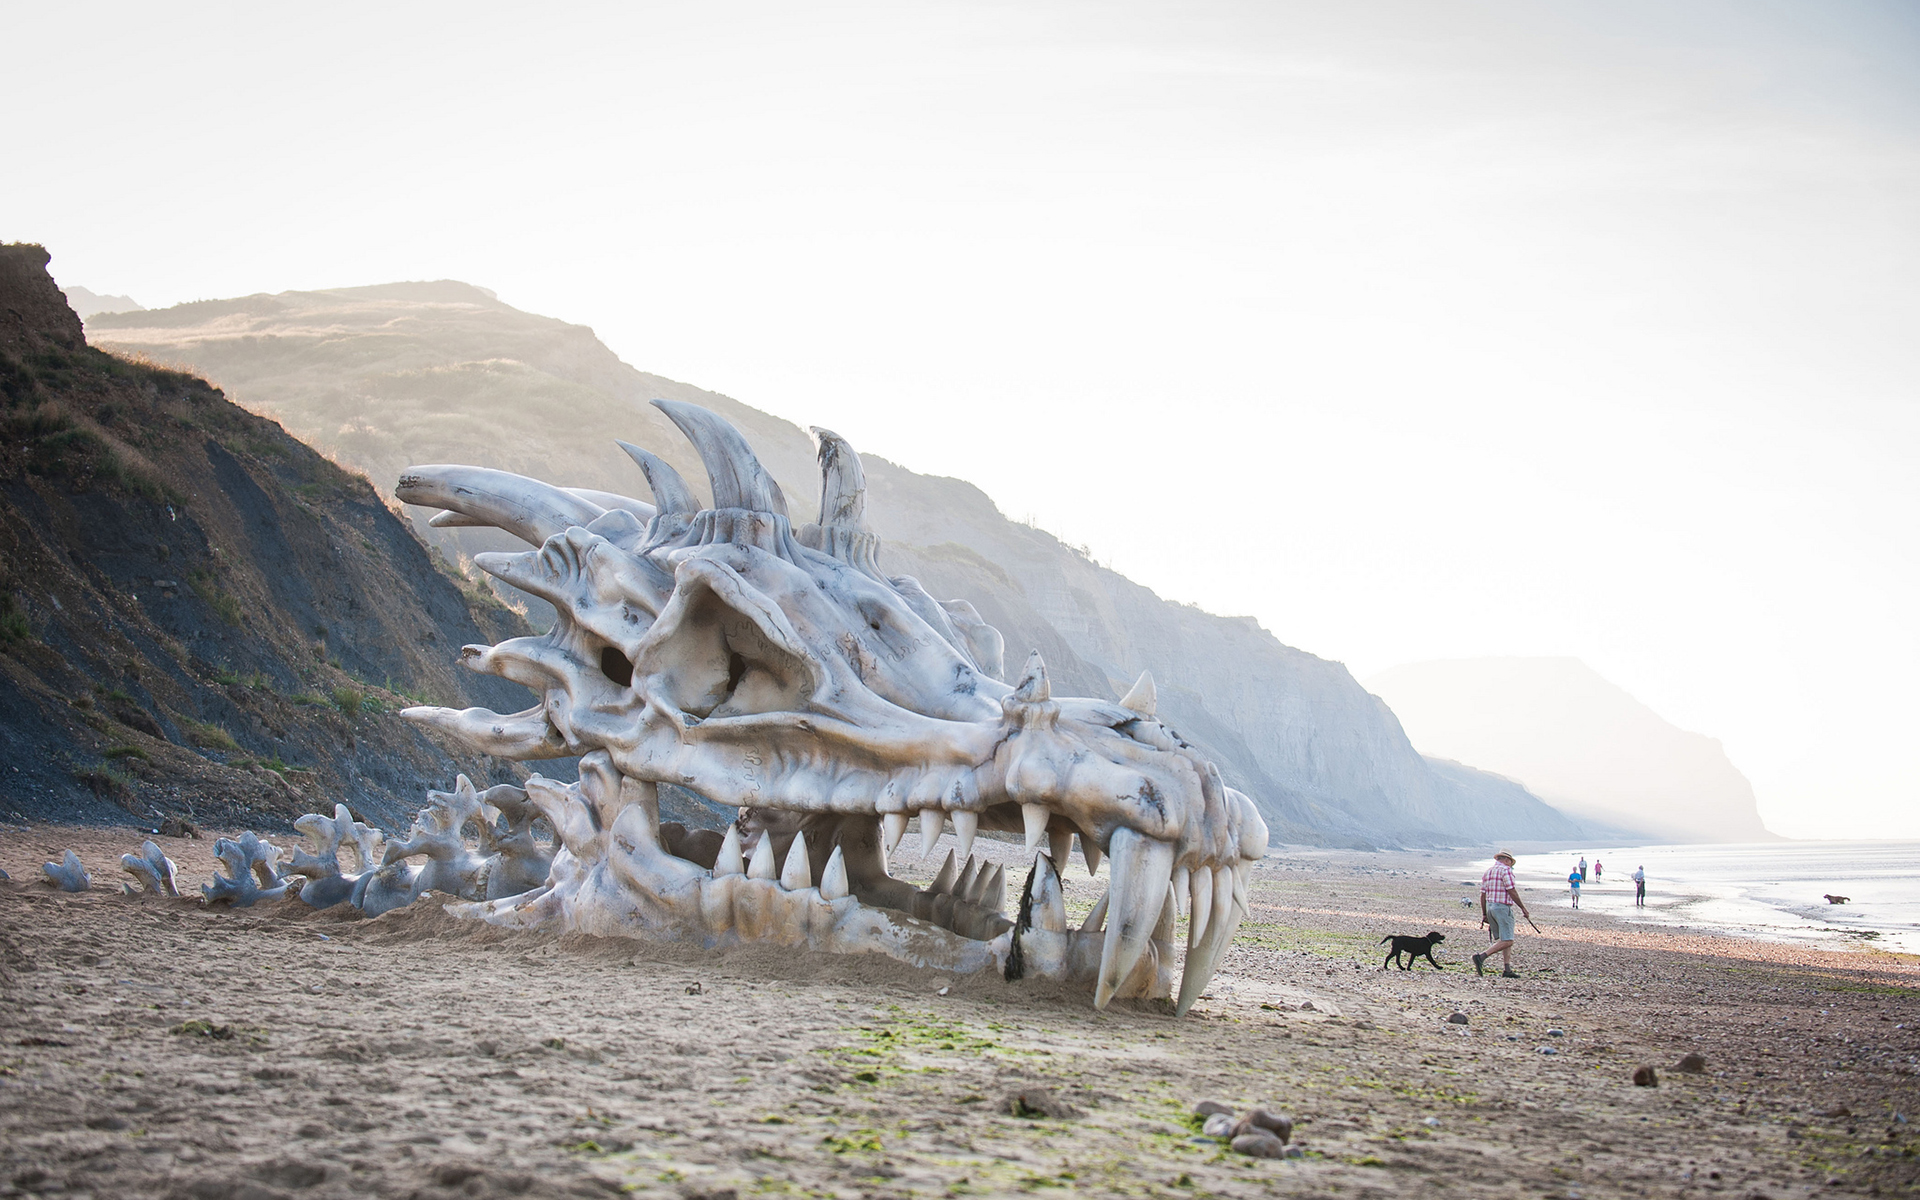 Game of Thrones Dragon Skull Skeleton Bones Beach fantasy dragons 1920x1200